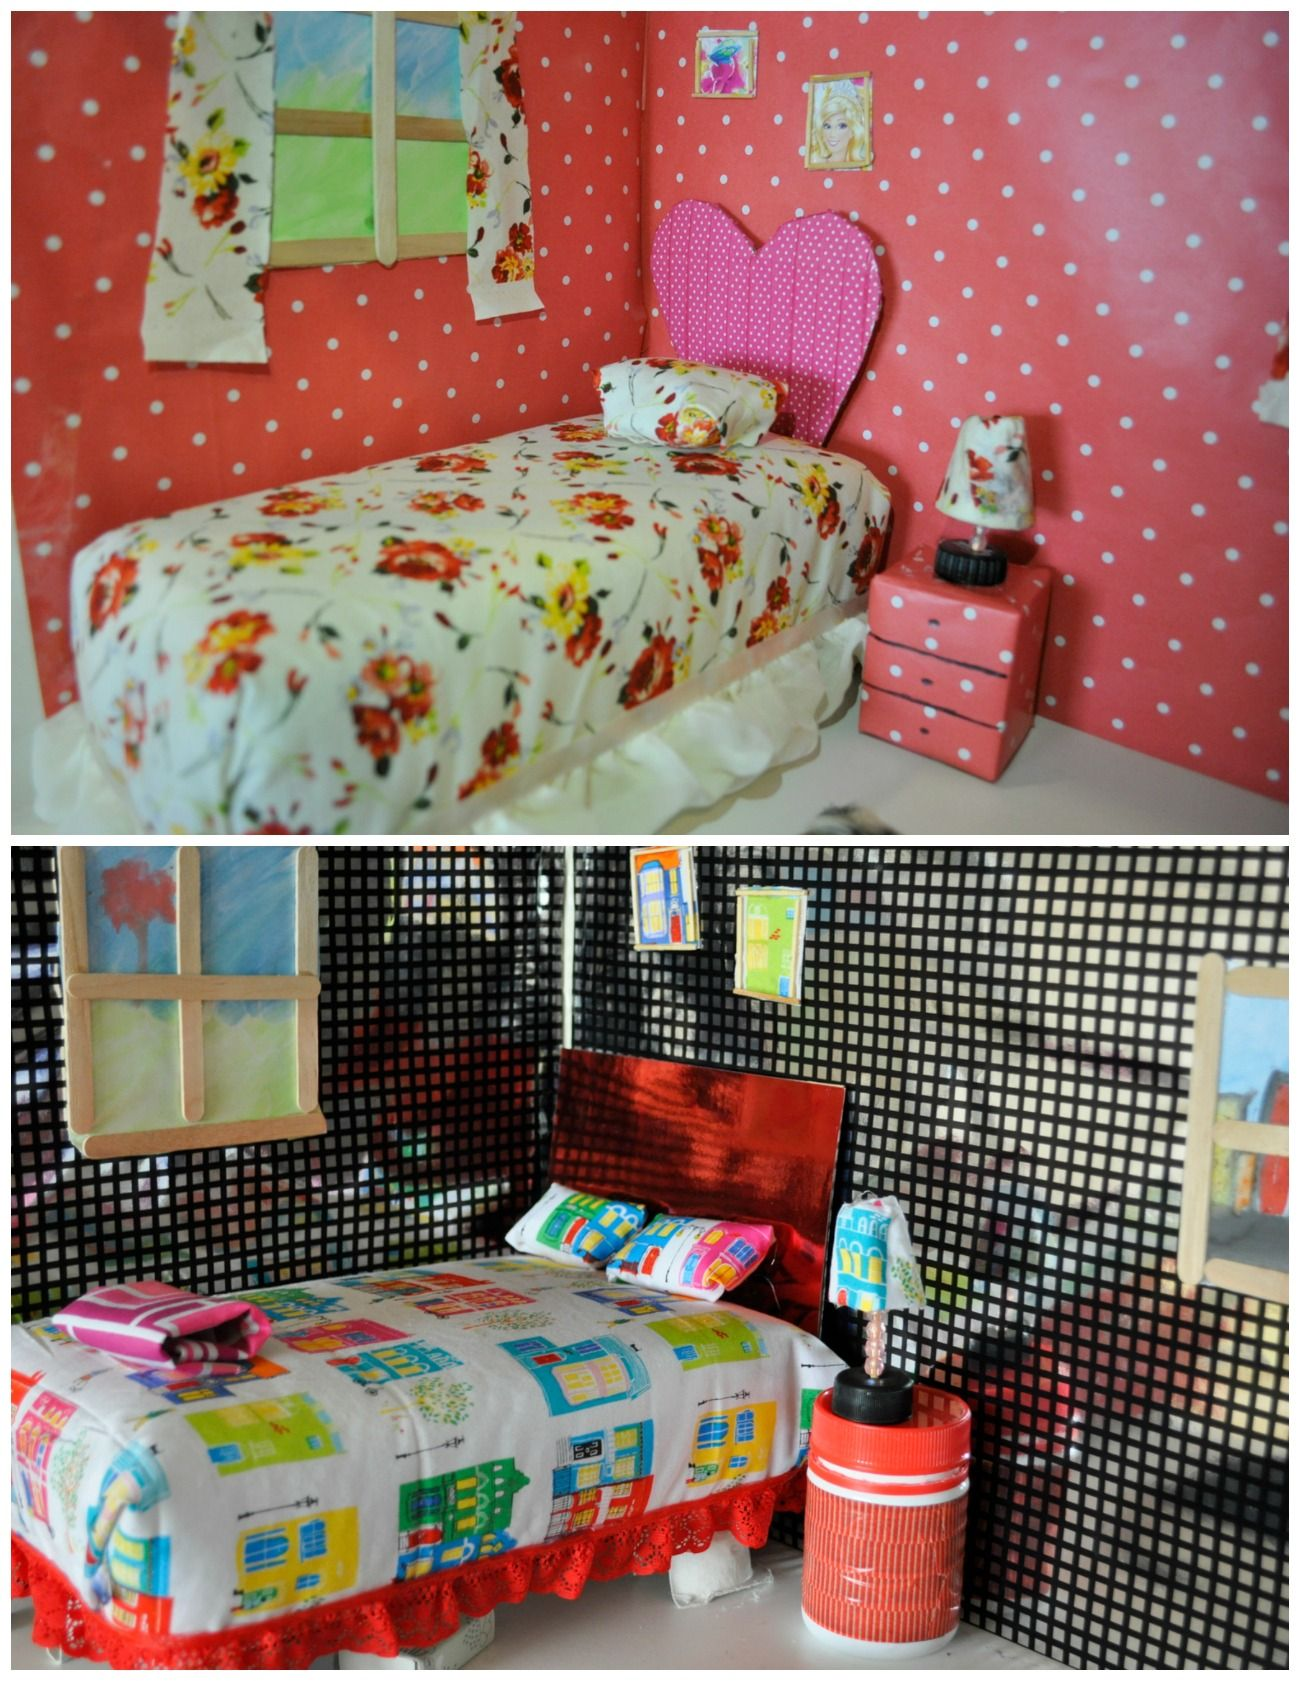 Barbie Bedroom In A Box: How To Make A Barbie Bed Out Of A Recycled Box